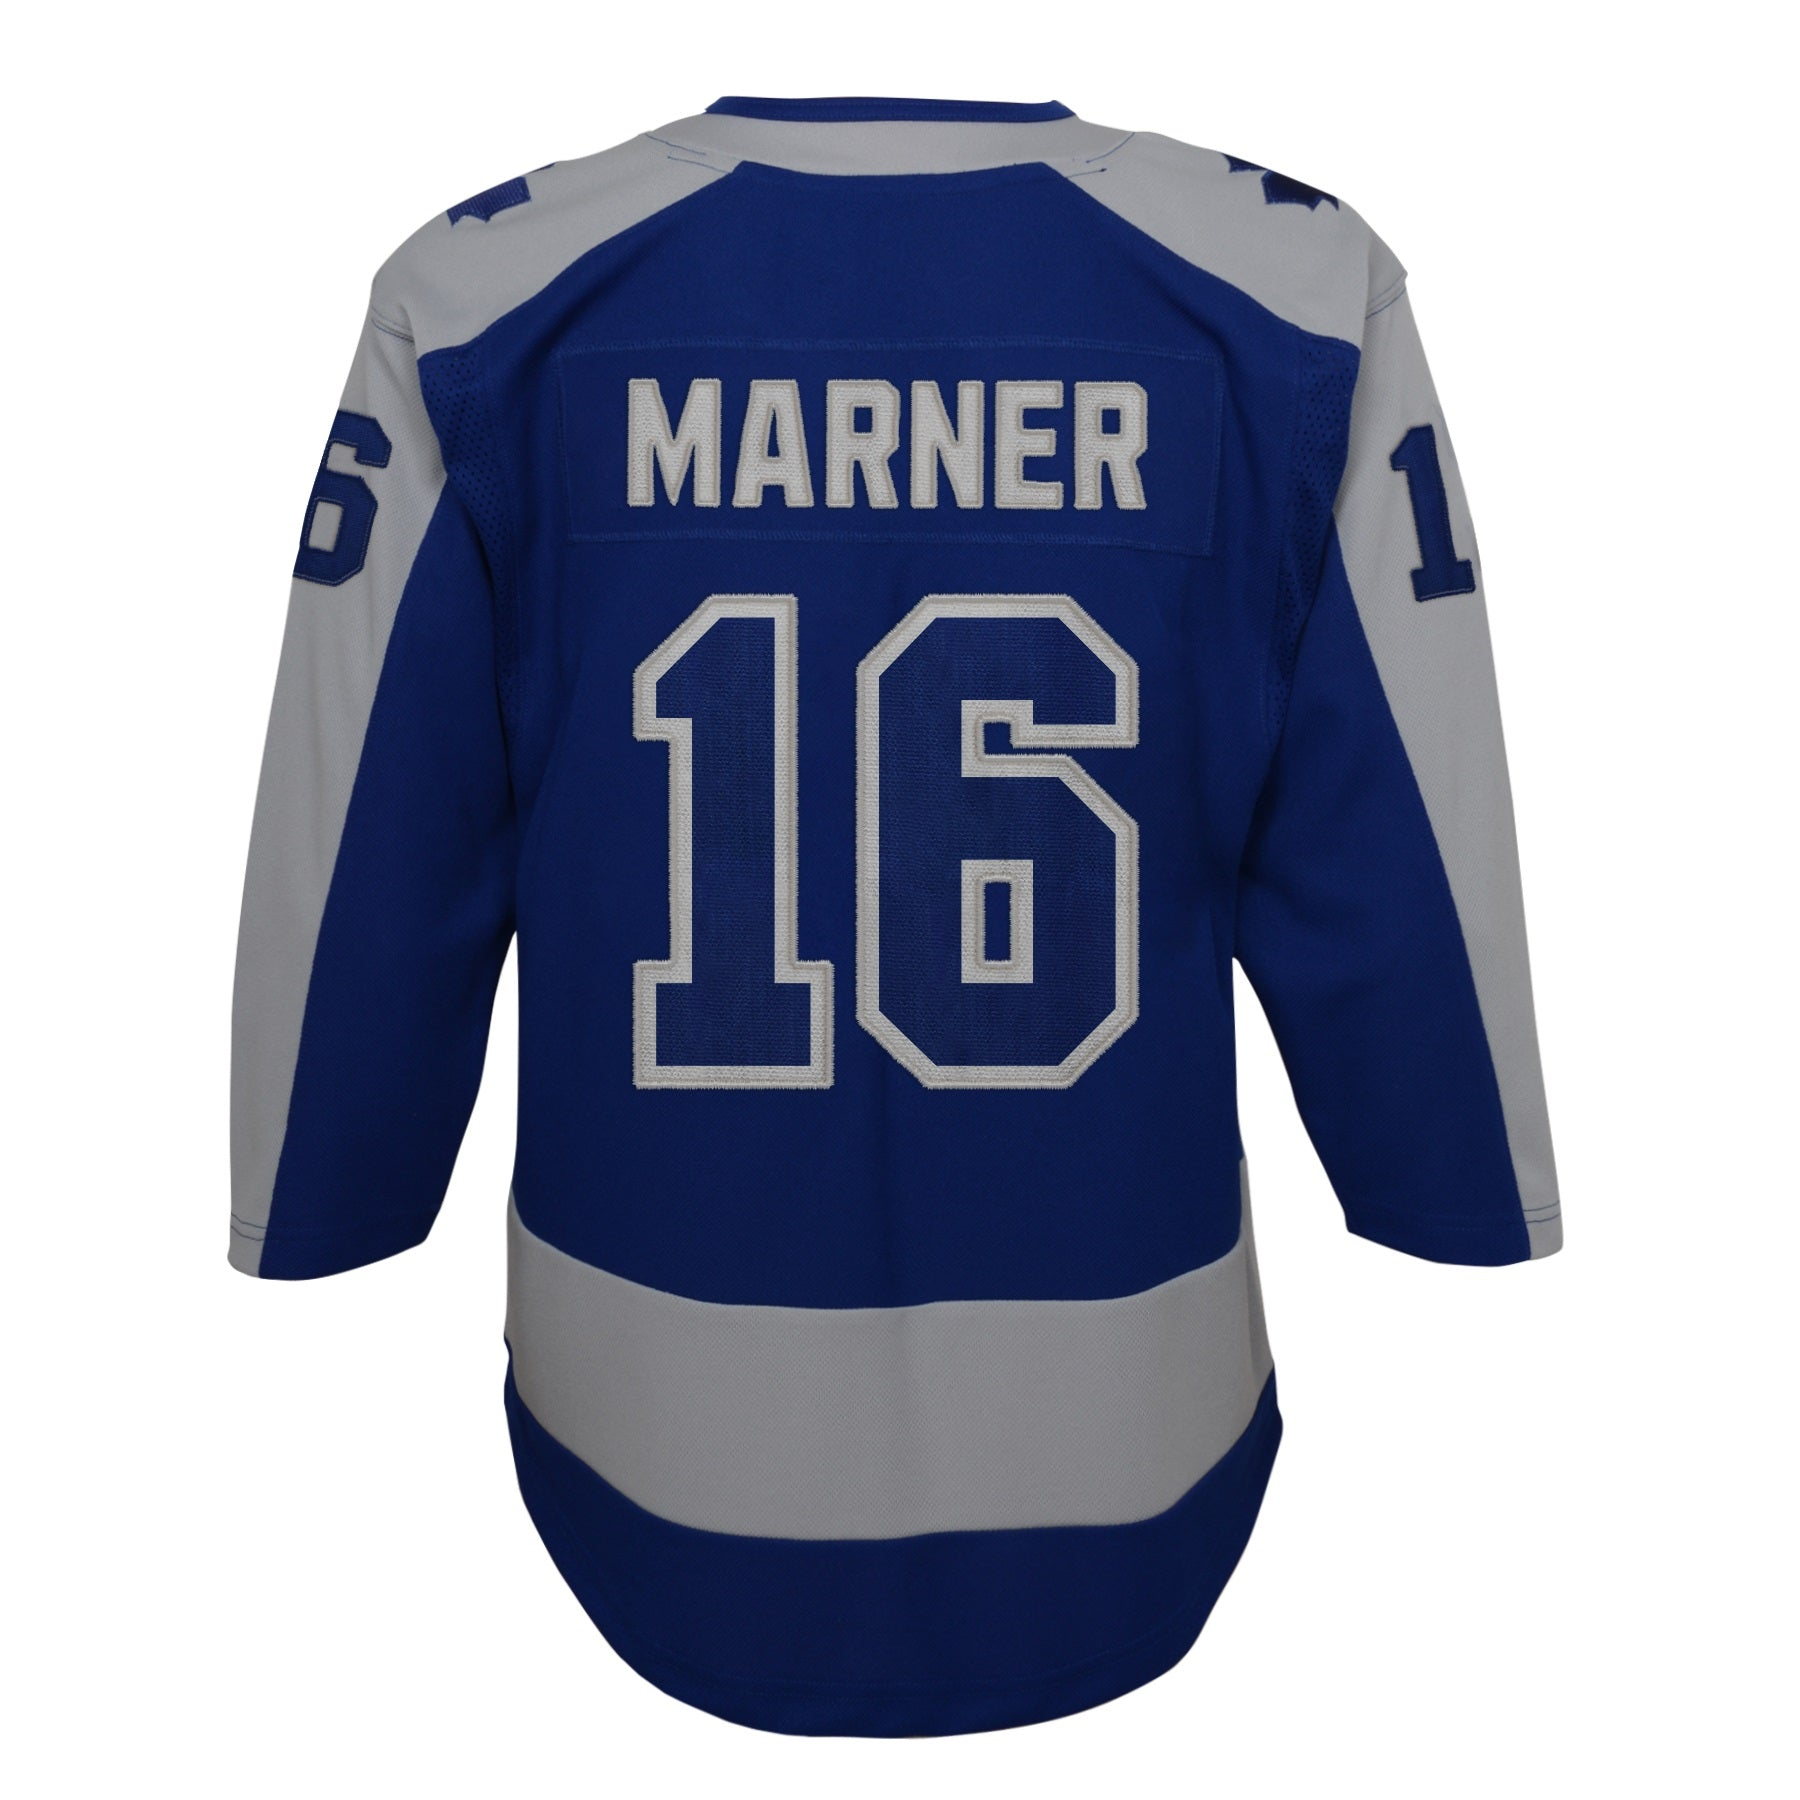 Maple Leafs Youth Special Edition Jersey - MARNER